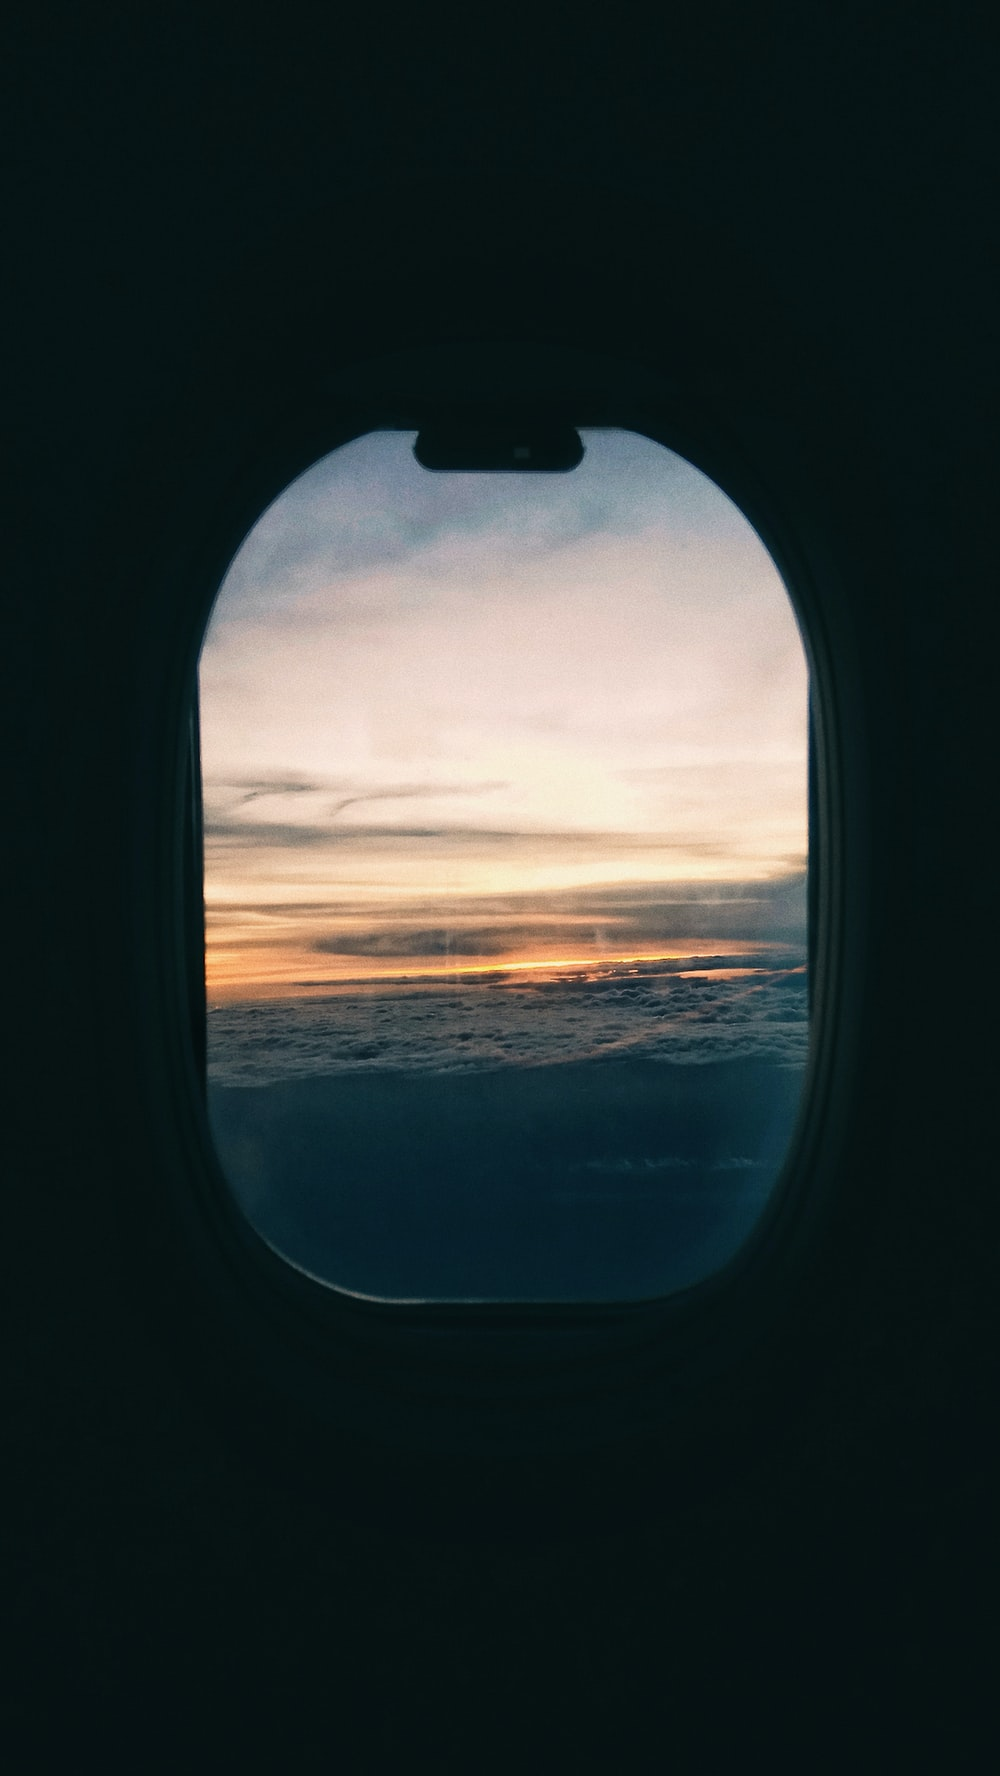 glass airplane window during golden hour